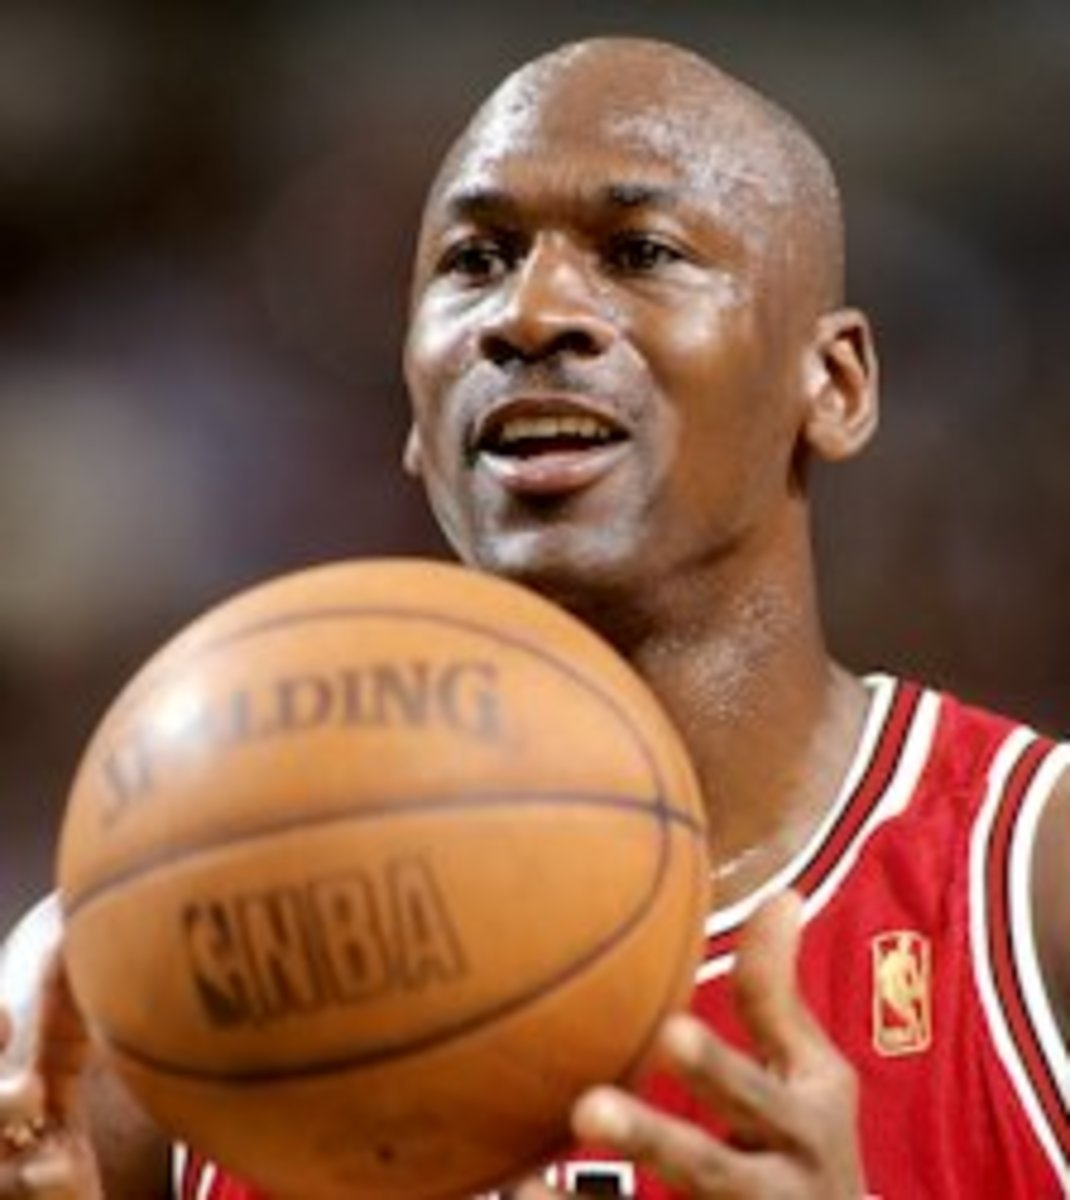 Michael Jordan's Top 10 Most Famous Plays & Dunks